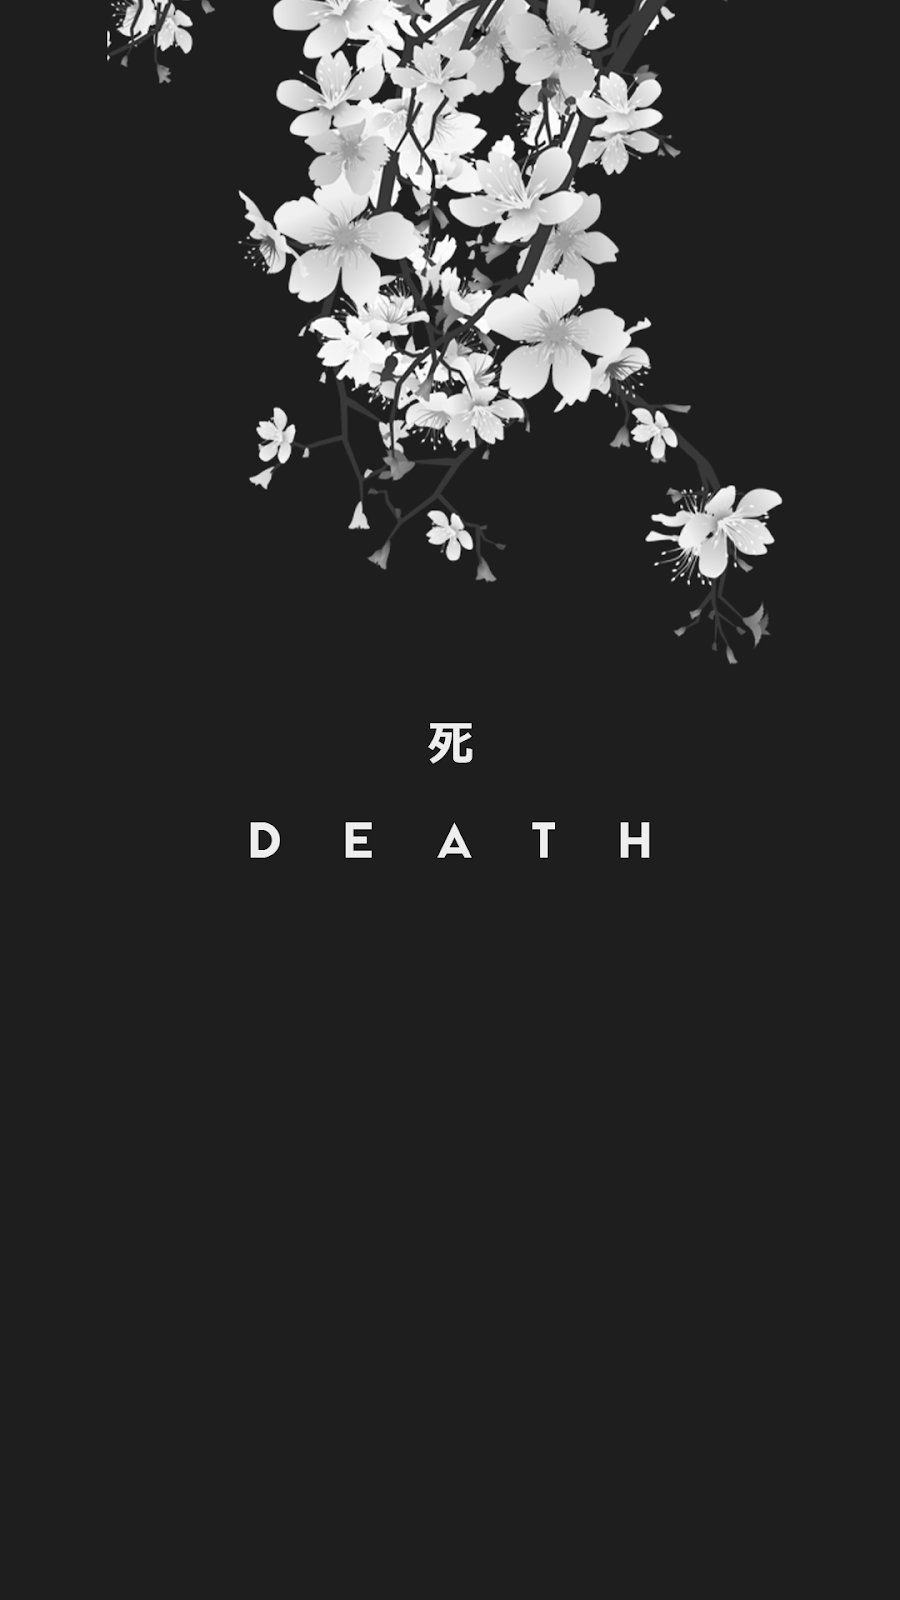 Death Download At Http Www Myfavwallpaper Com 2018 08 Death Html Iphonewallpaper Phonewallpaper Backgr Dark Wallpaper Edgy Wallpaper Aesthetic Wallpapers